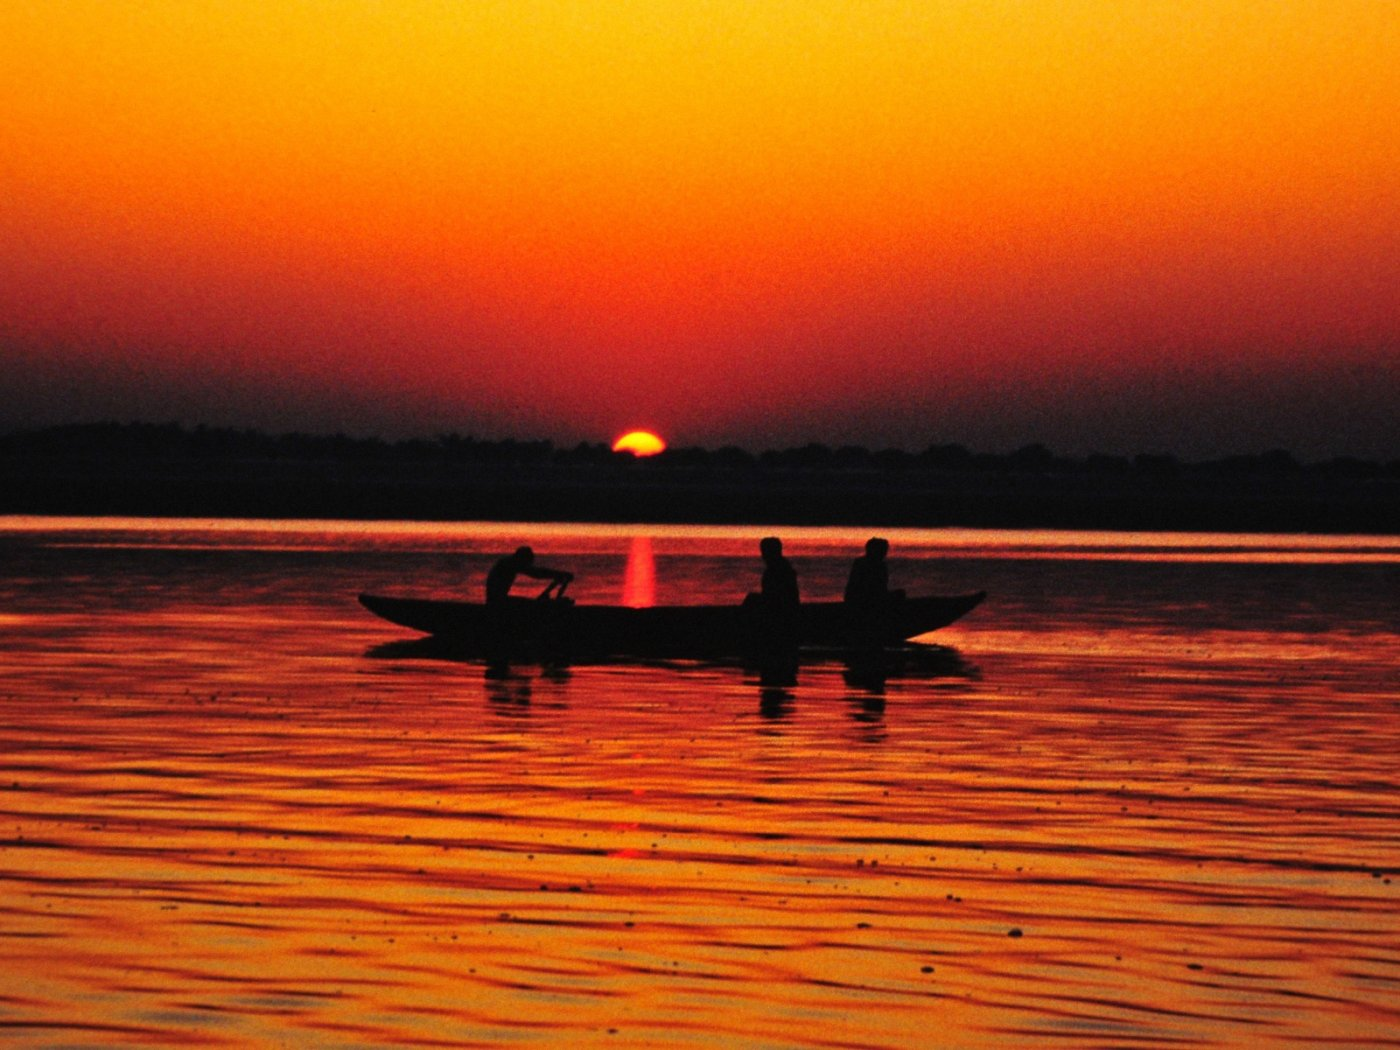 odia poem on river, odia poem about river, how to write a odia poem, odia poem book, odia poem comments, odia poem for class 2, odia poem download, odia poem pdf download, odia poem song download, odia poem for magazine